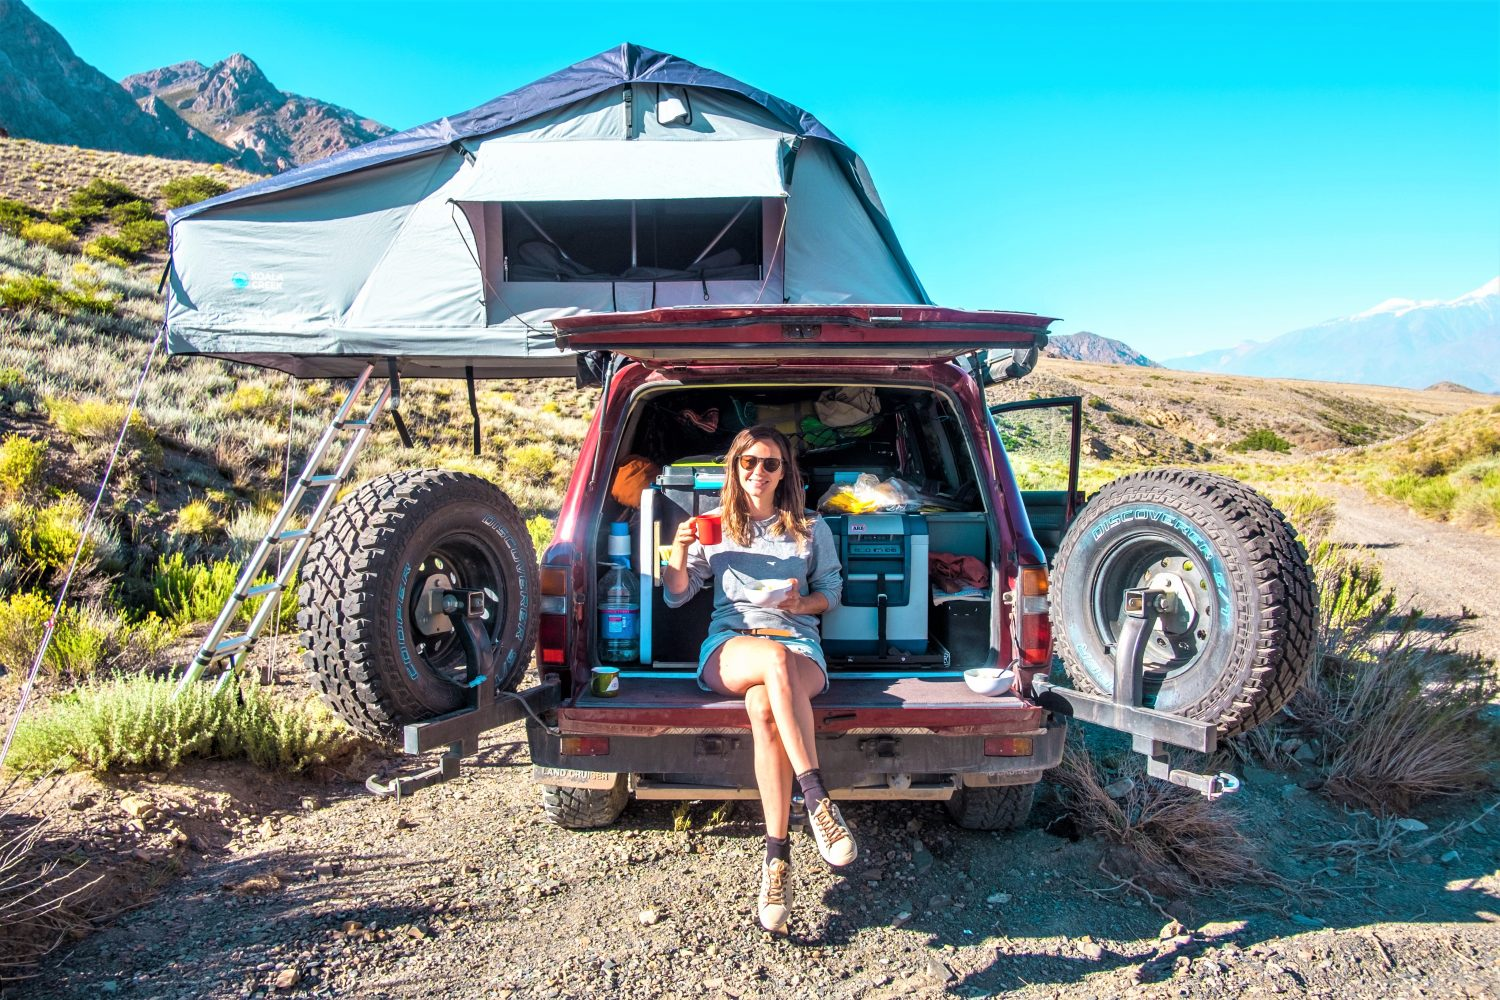 Sarah and Dimitri O have been travelling across South America on honeymoon in a 4x4 since November. Image: Caters News Agency